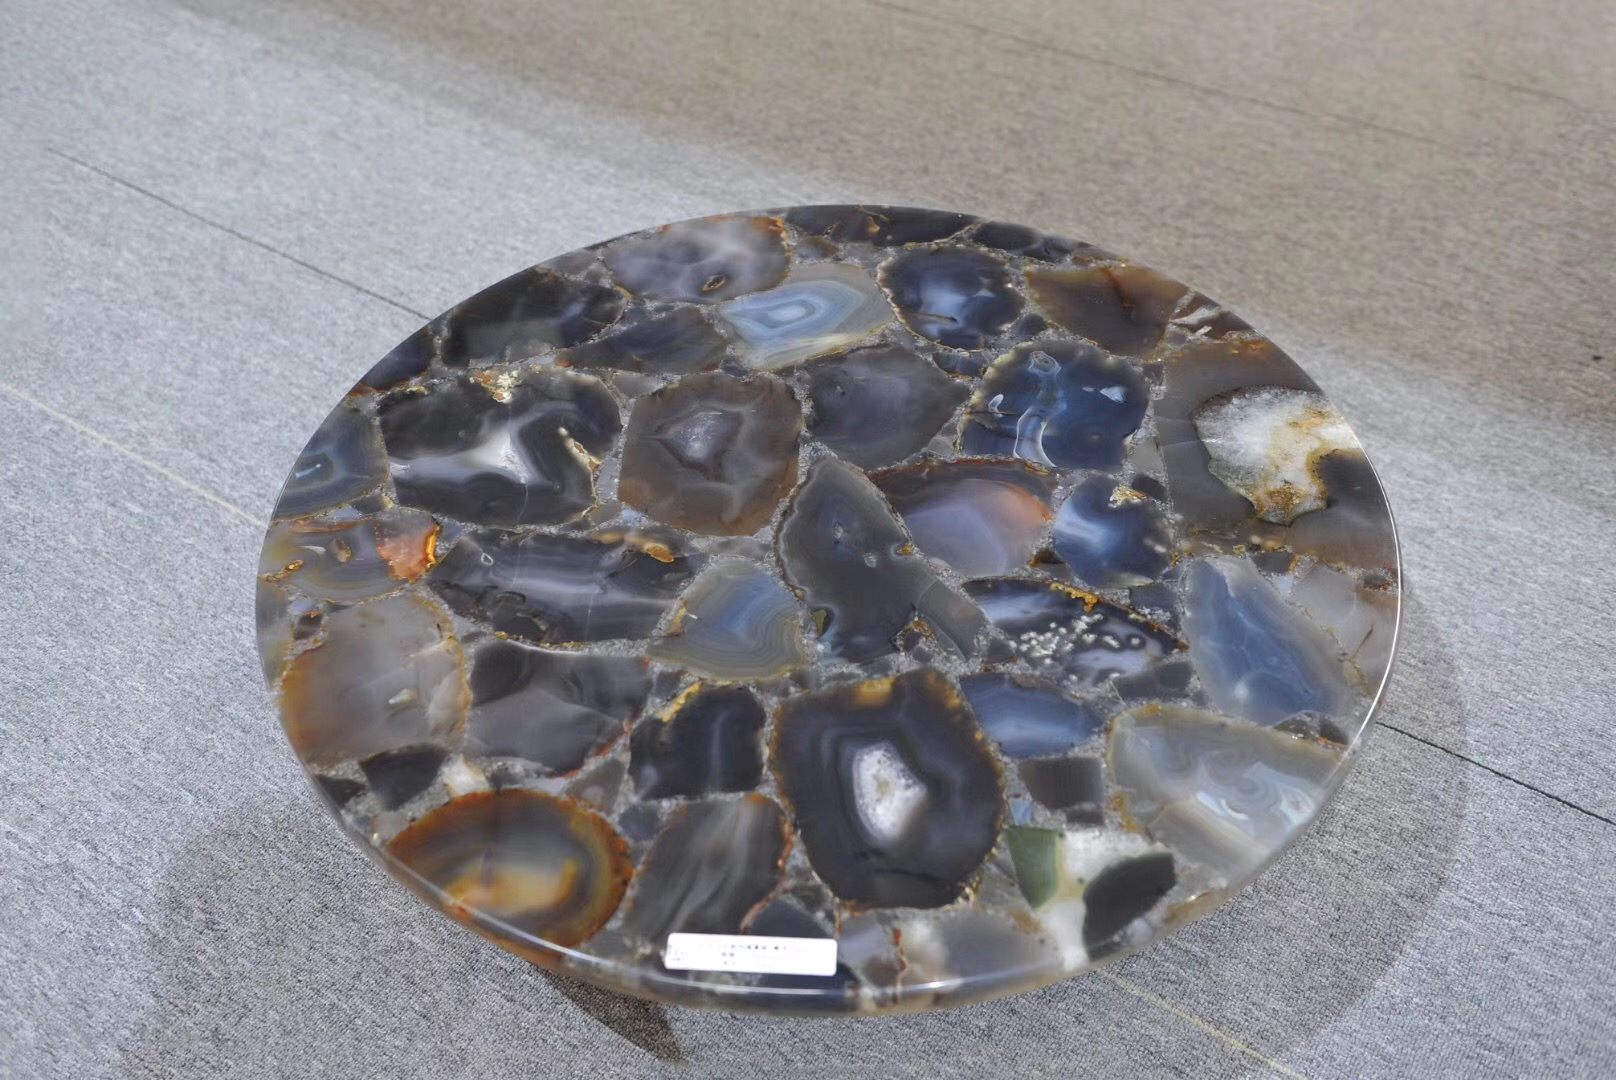 Semiprecious stone,semi-precious stone,semiprecious stone slabs,tiger eye stone tiles,tiger eye coffee table top,eye of tiger,blue tiger eye slab,tiger eye table tops